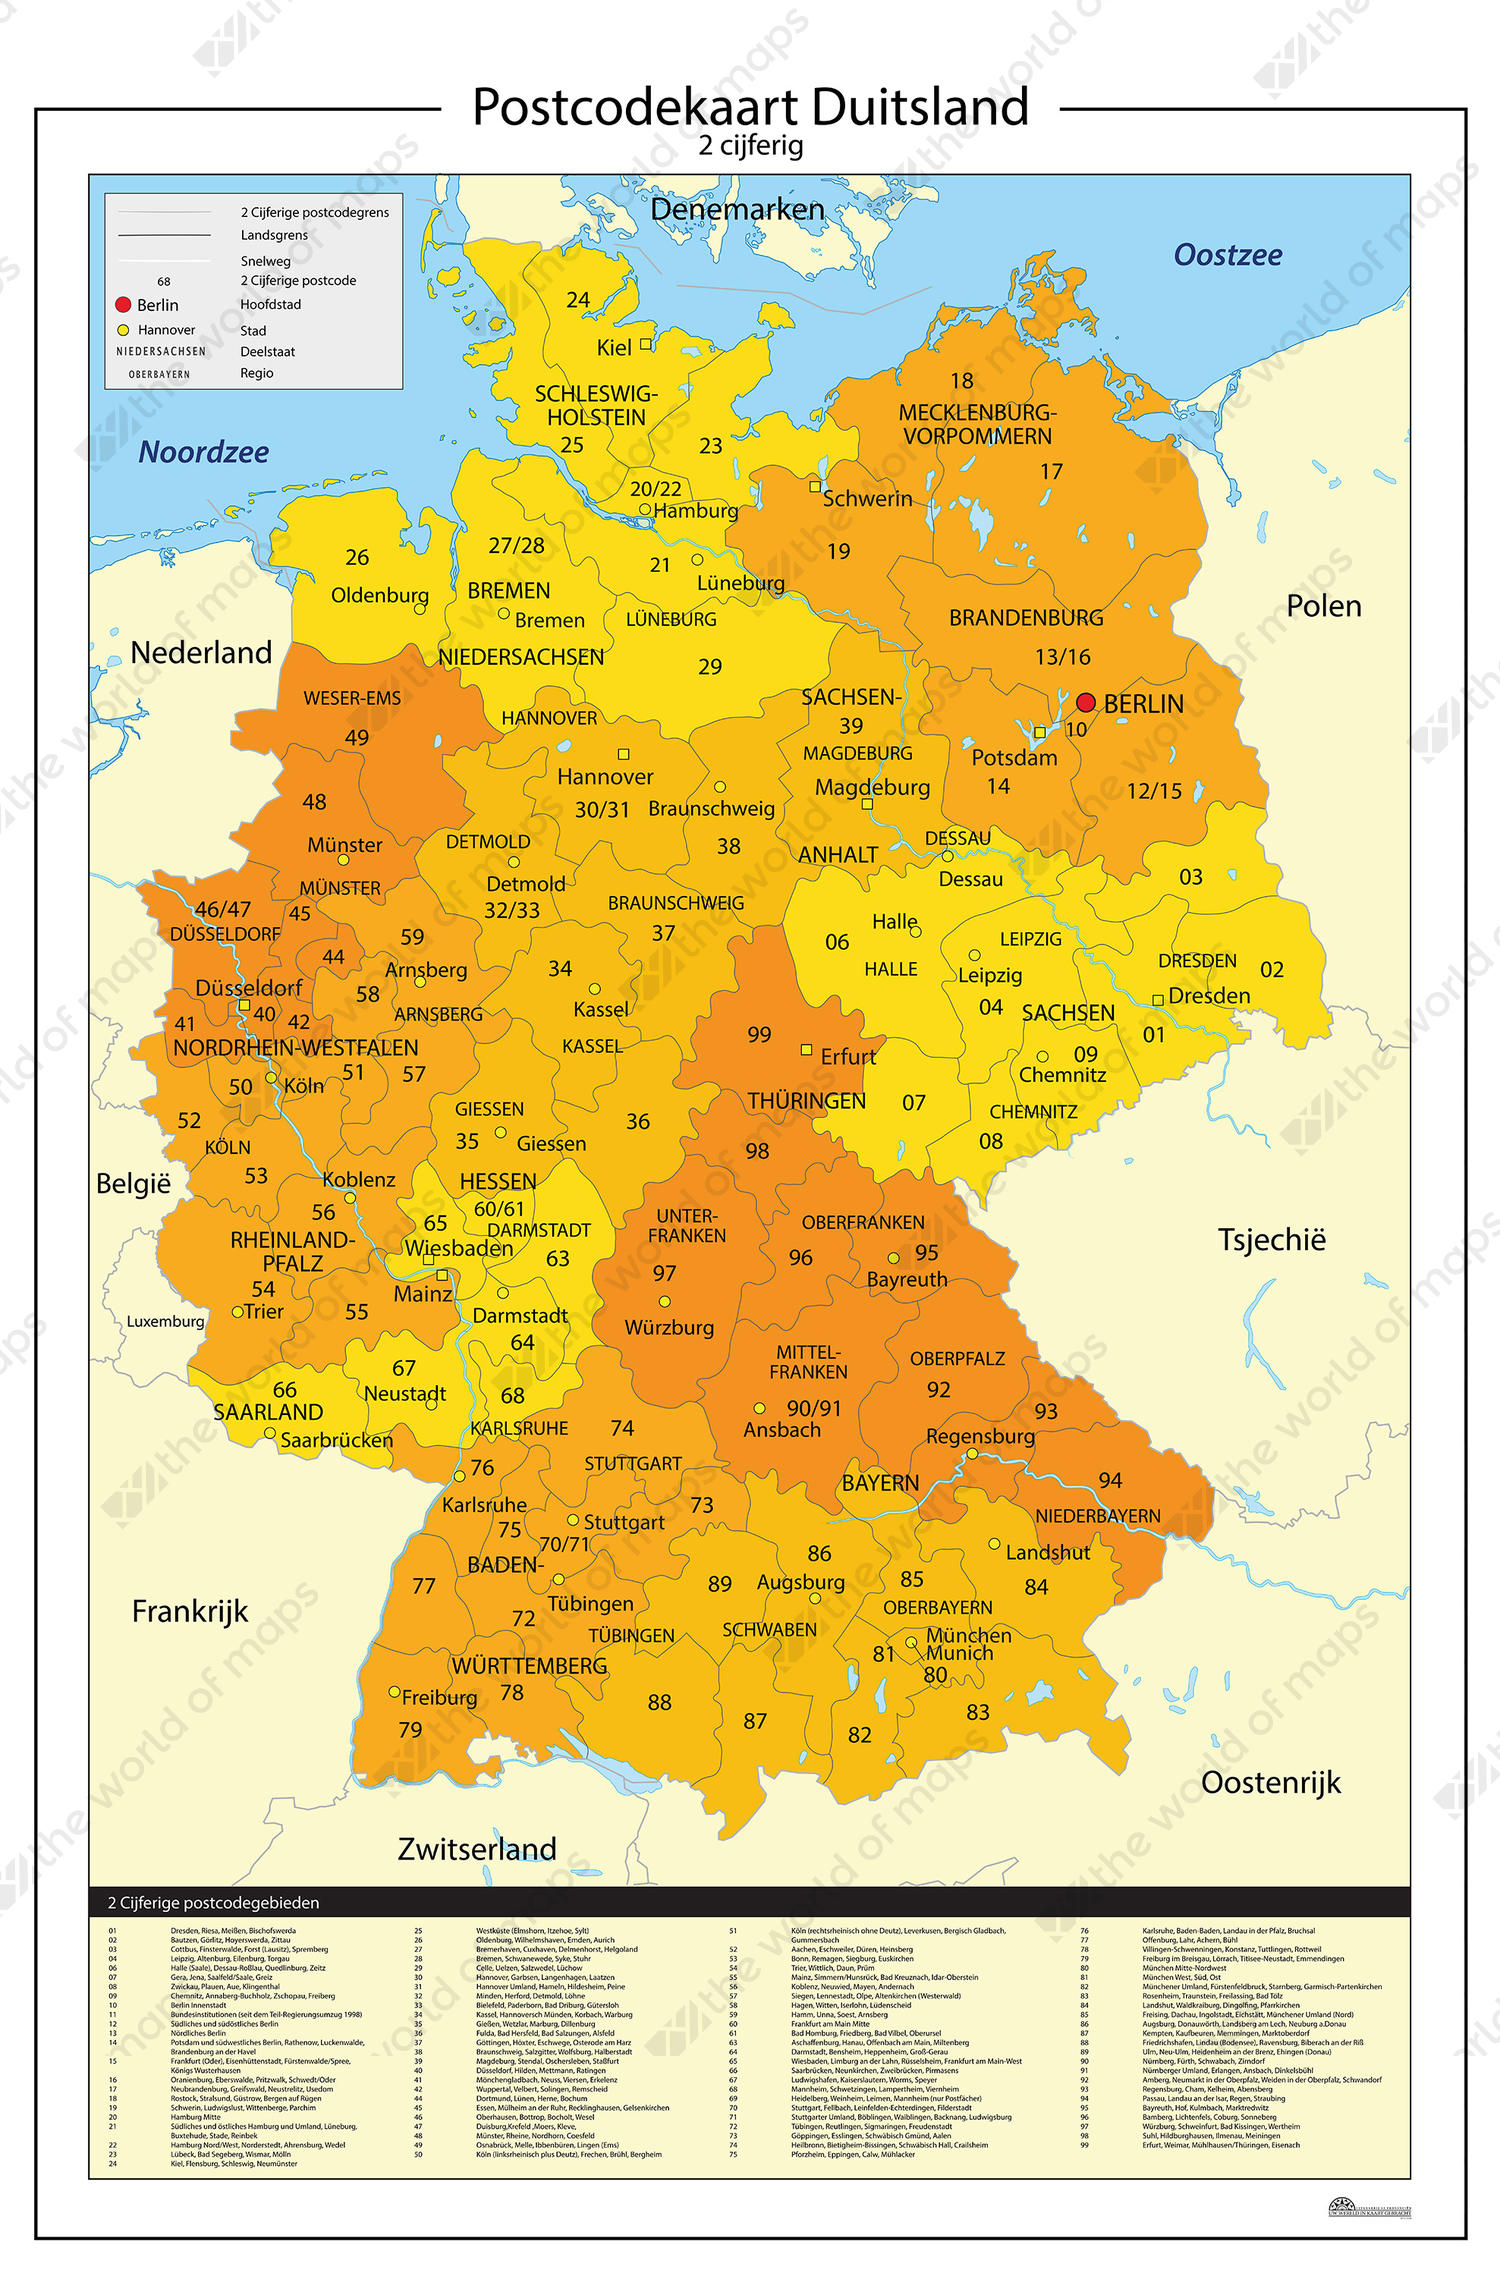 Map Of Germany Jpg.Digital Postcode Map Of Germany 2 Digit 814 The World Of Maps Com